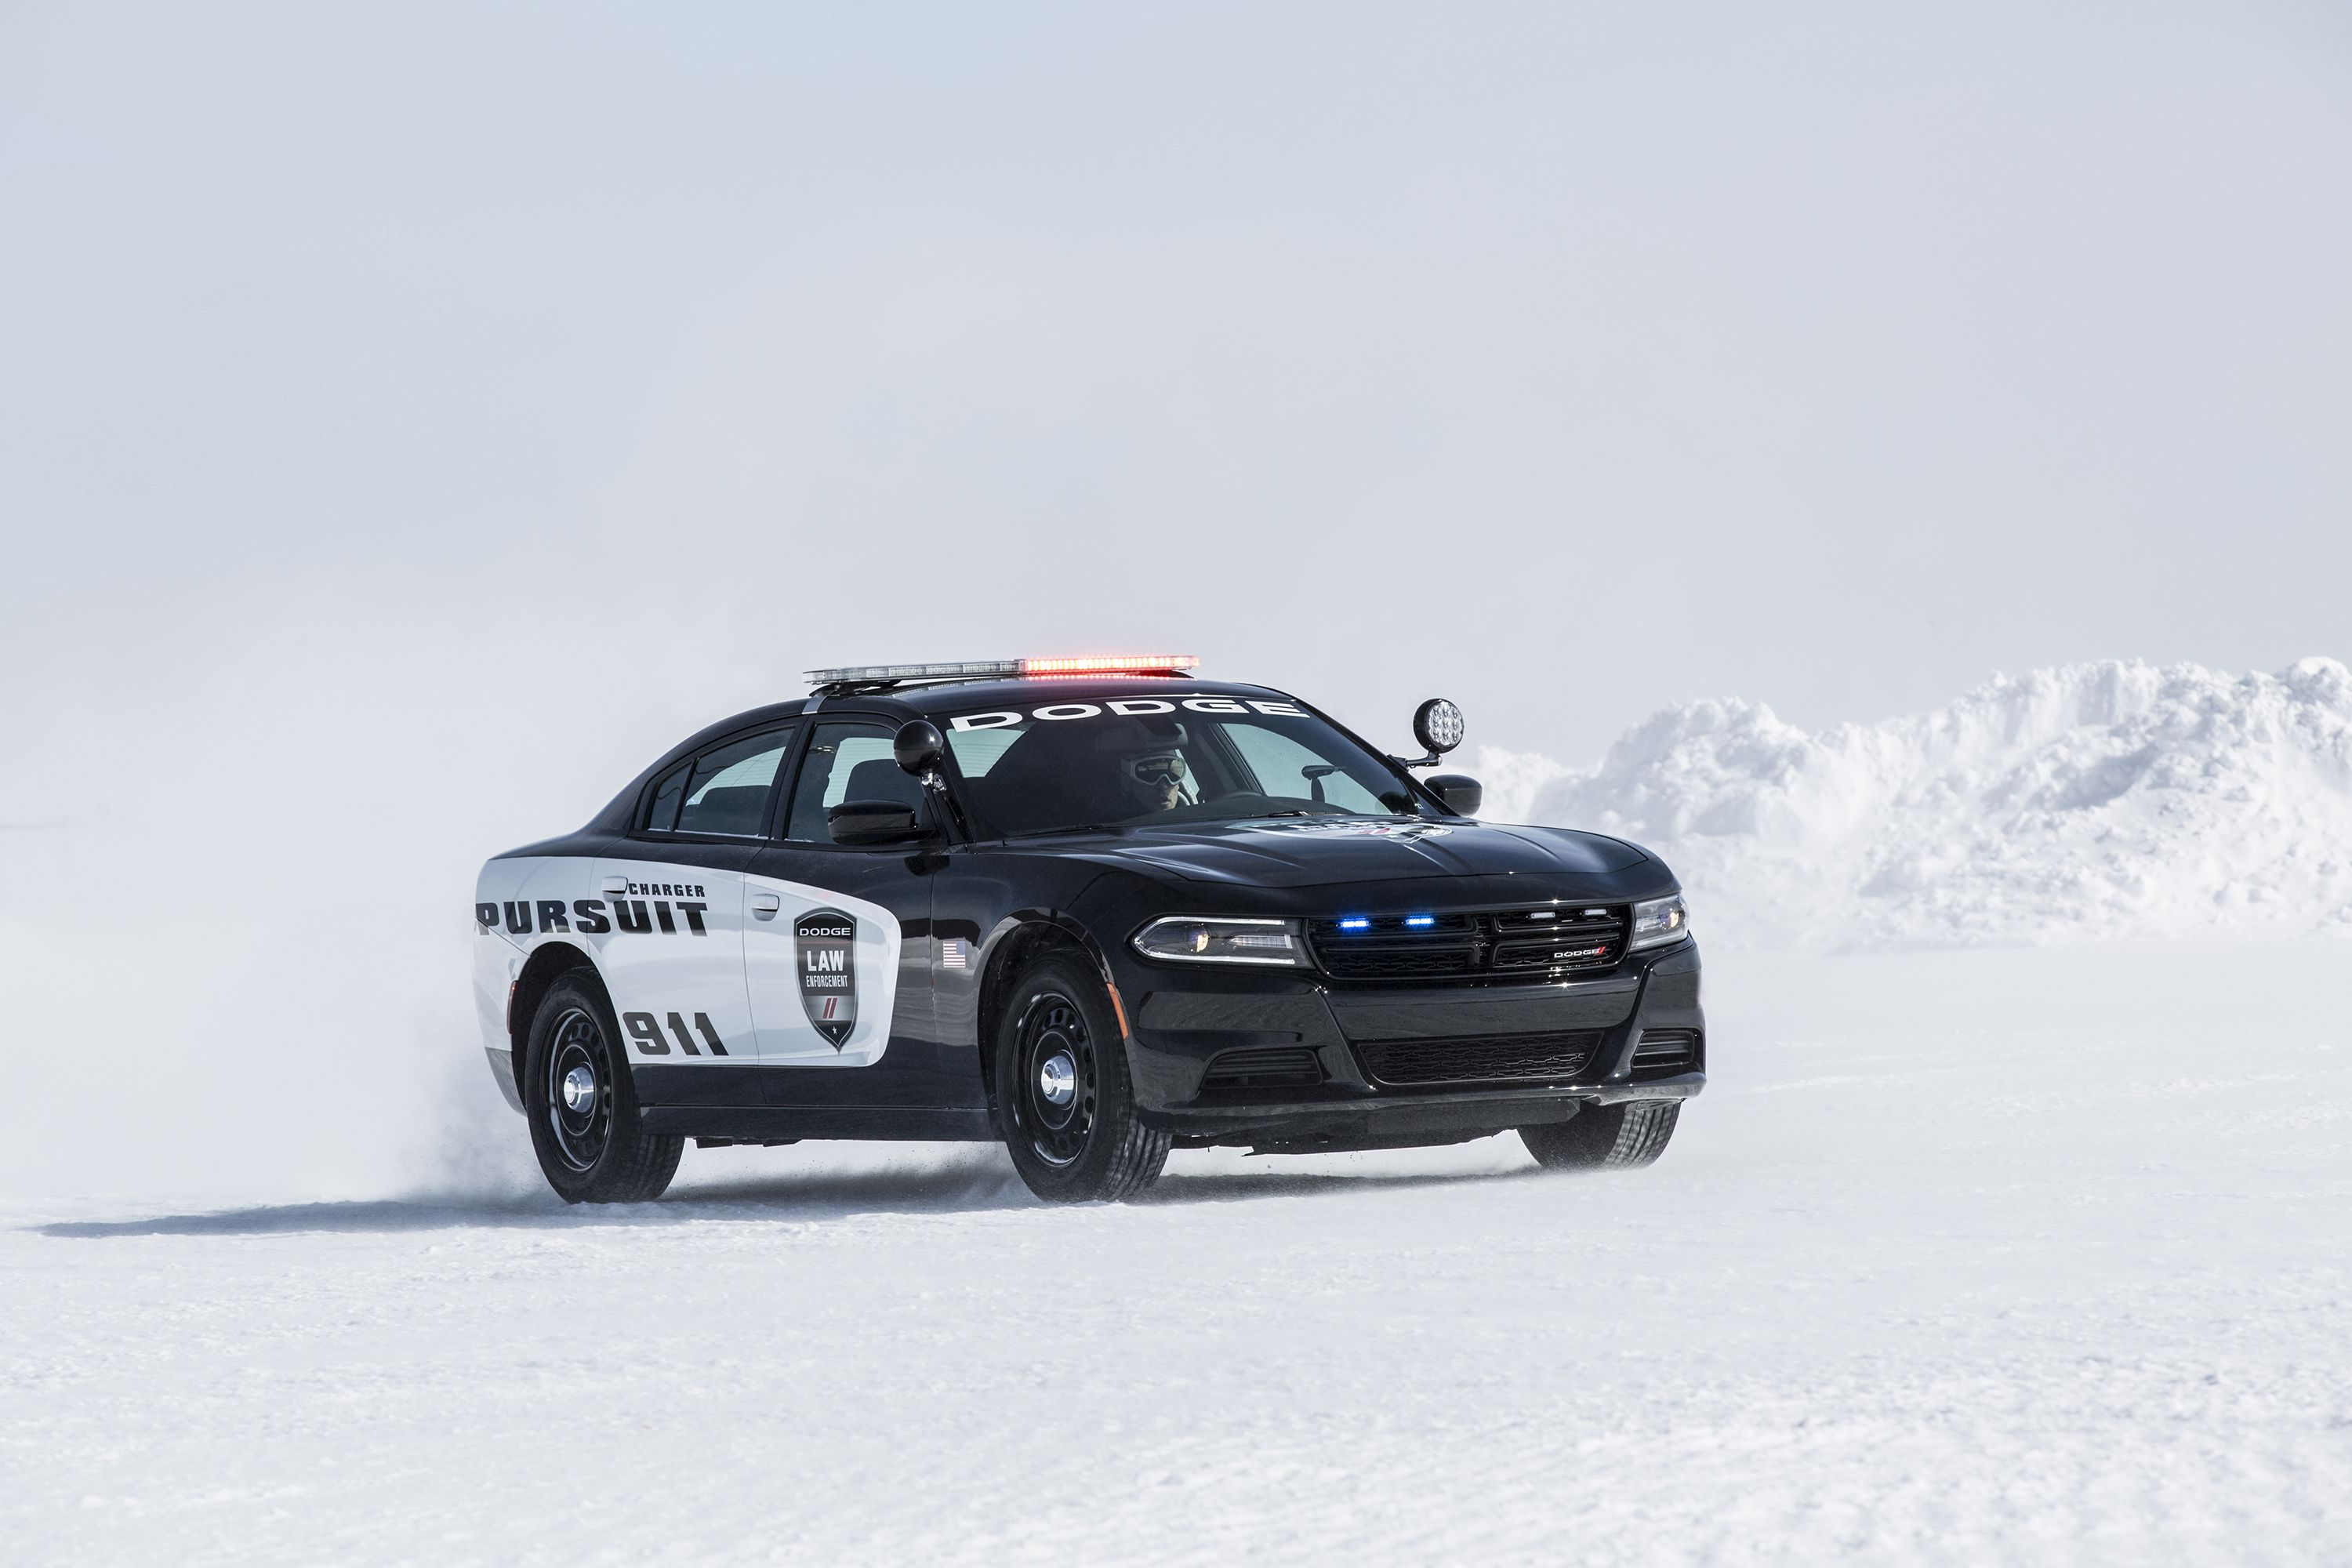 2017 Dodge Charger Police Pursuit in the snow